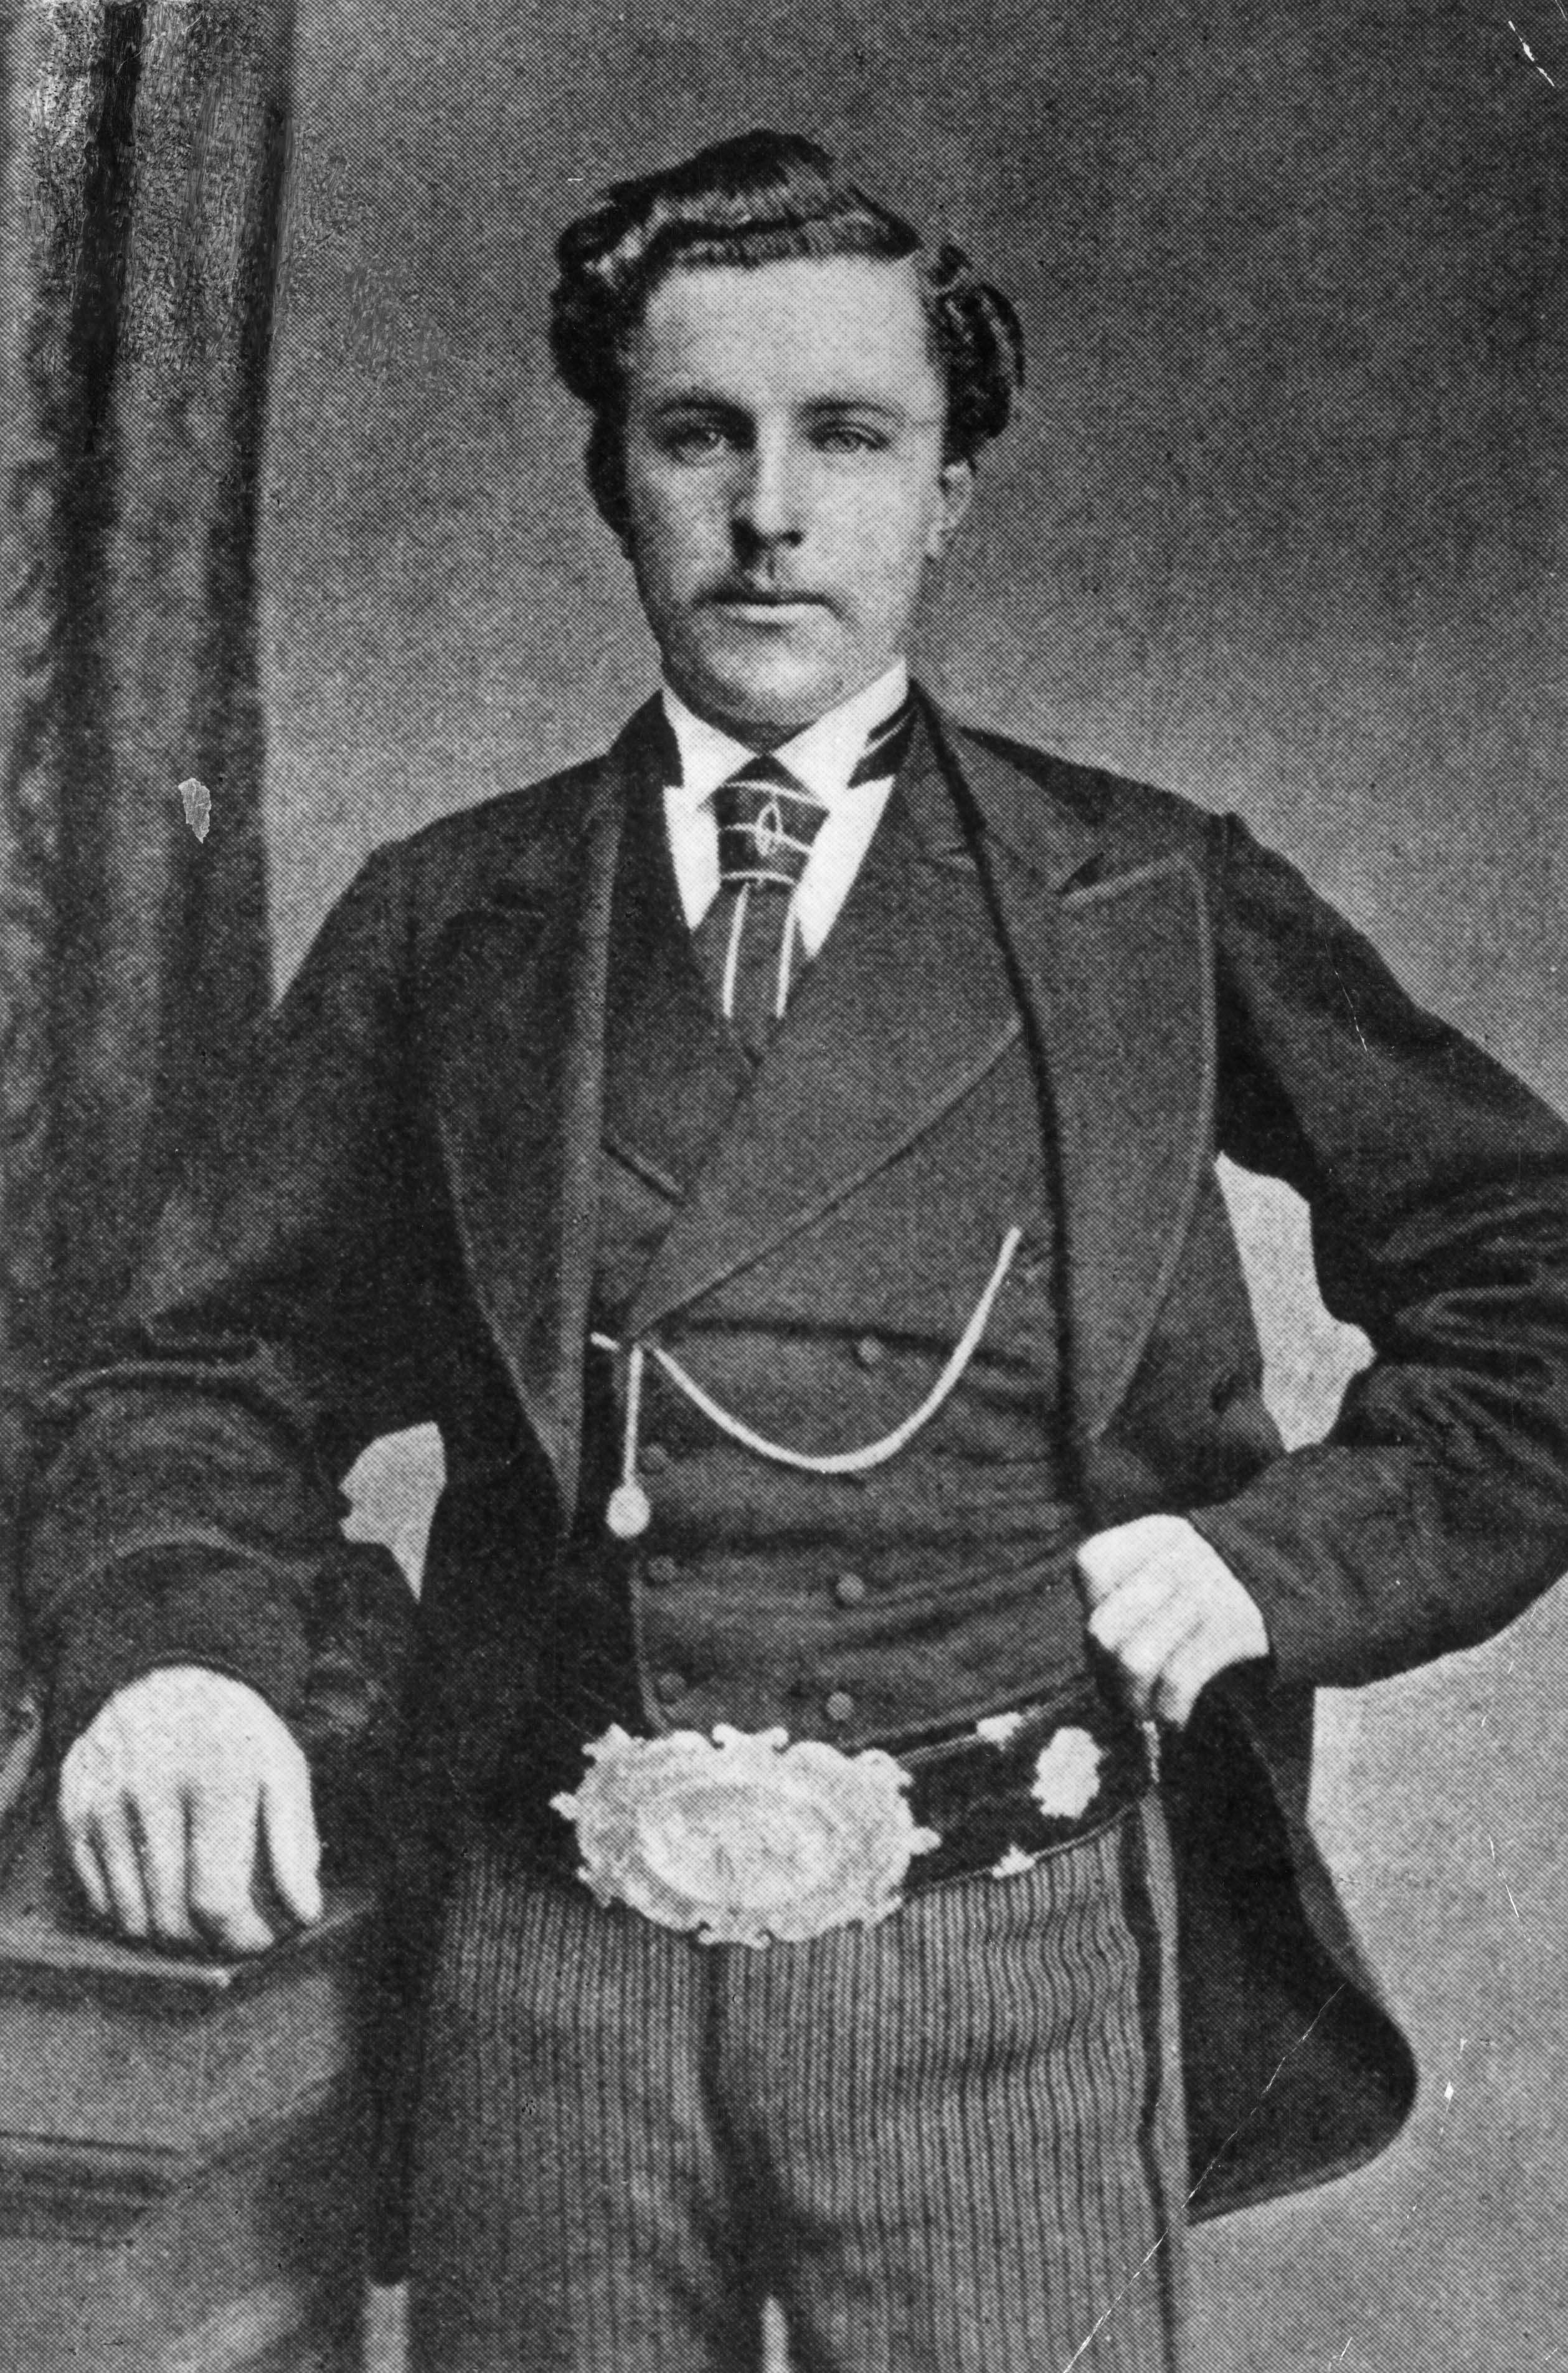 19. 1868: Young Tom beats Old Tom